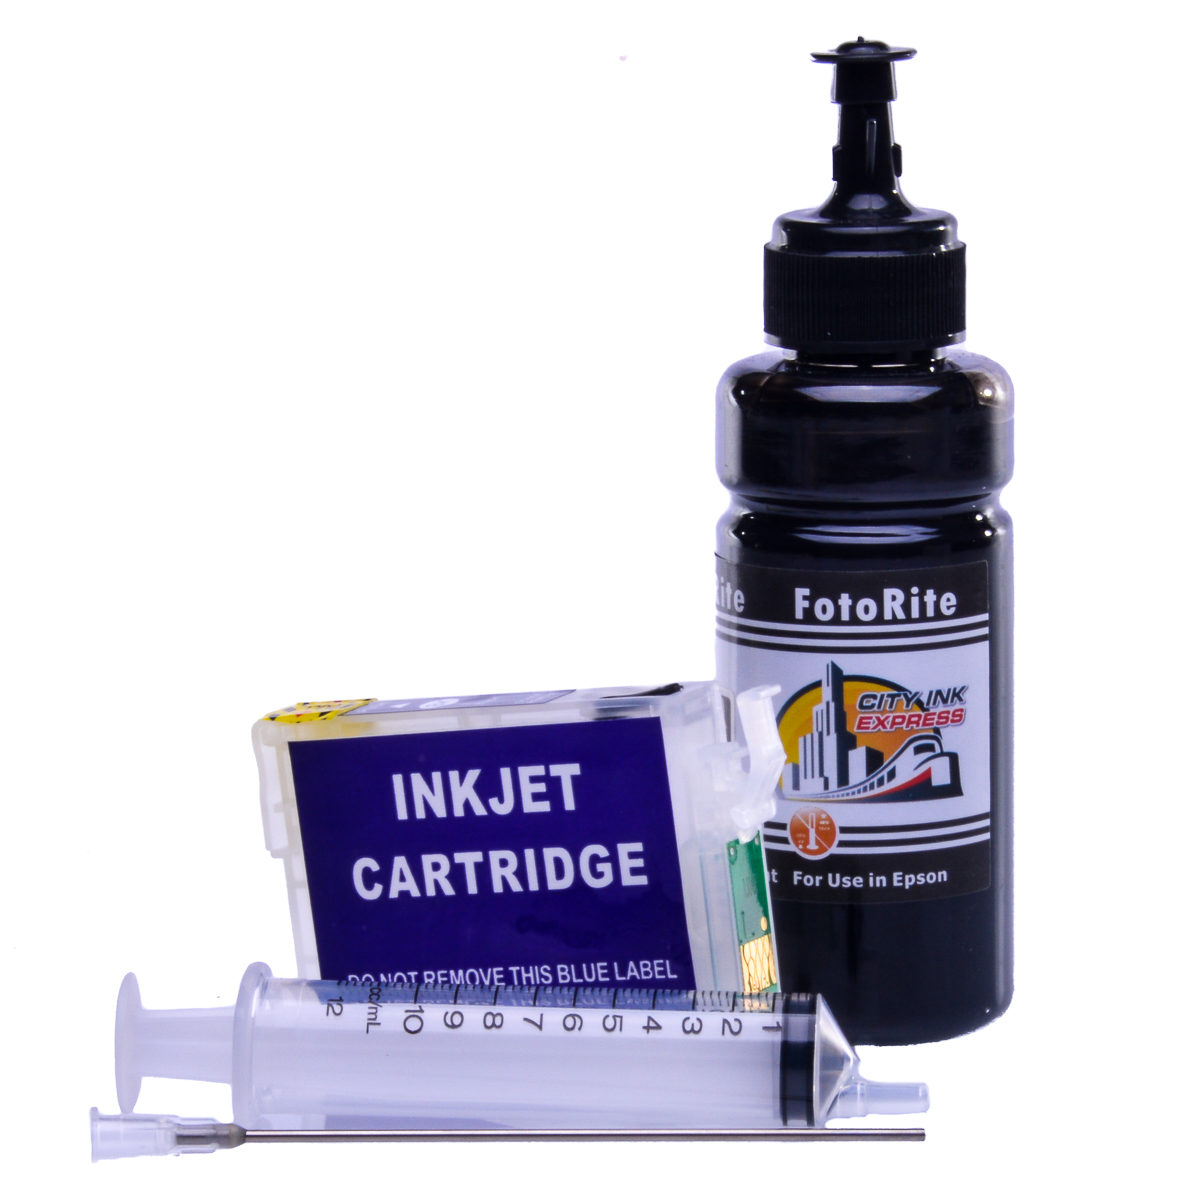 Refillable pigment Cheap printer cartridges for Epson Stylus D120 C13T07114010 T0711 Black